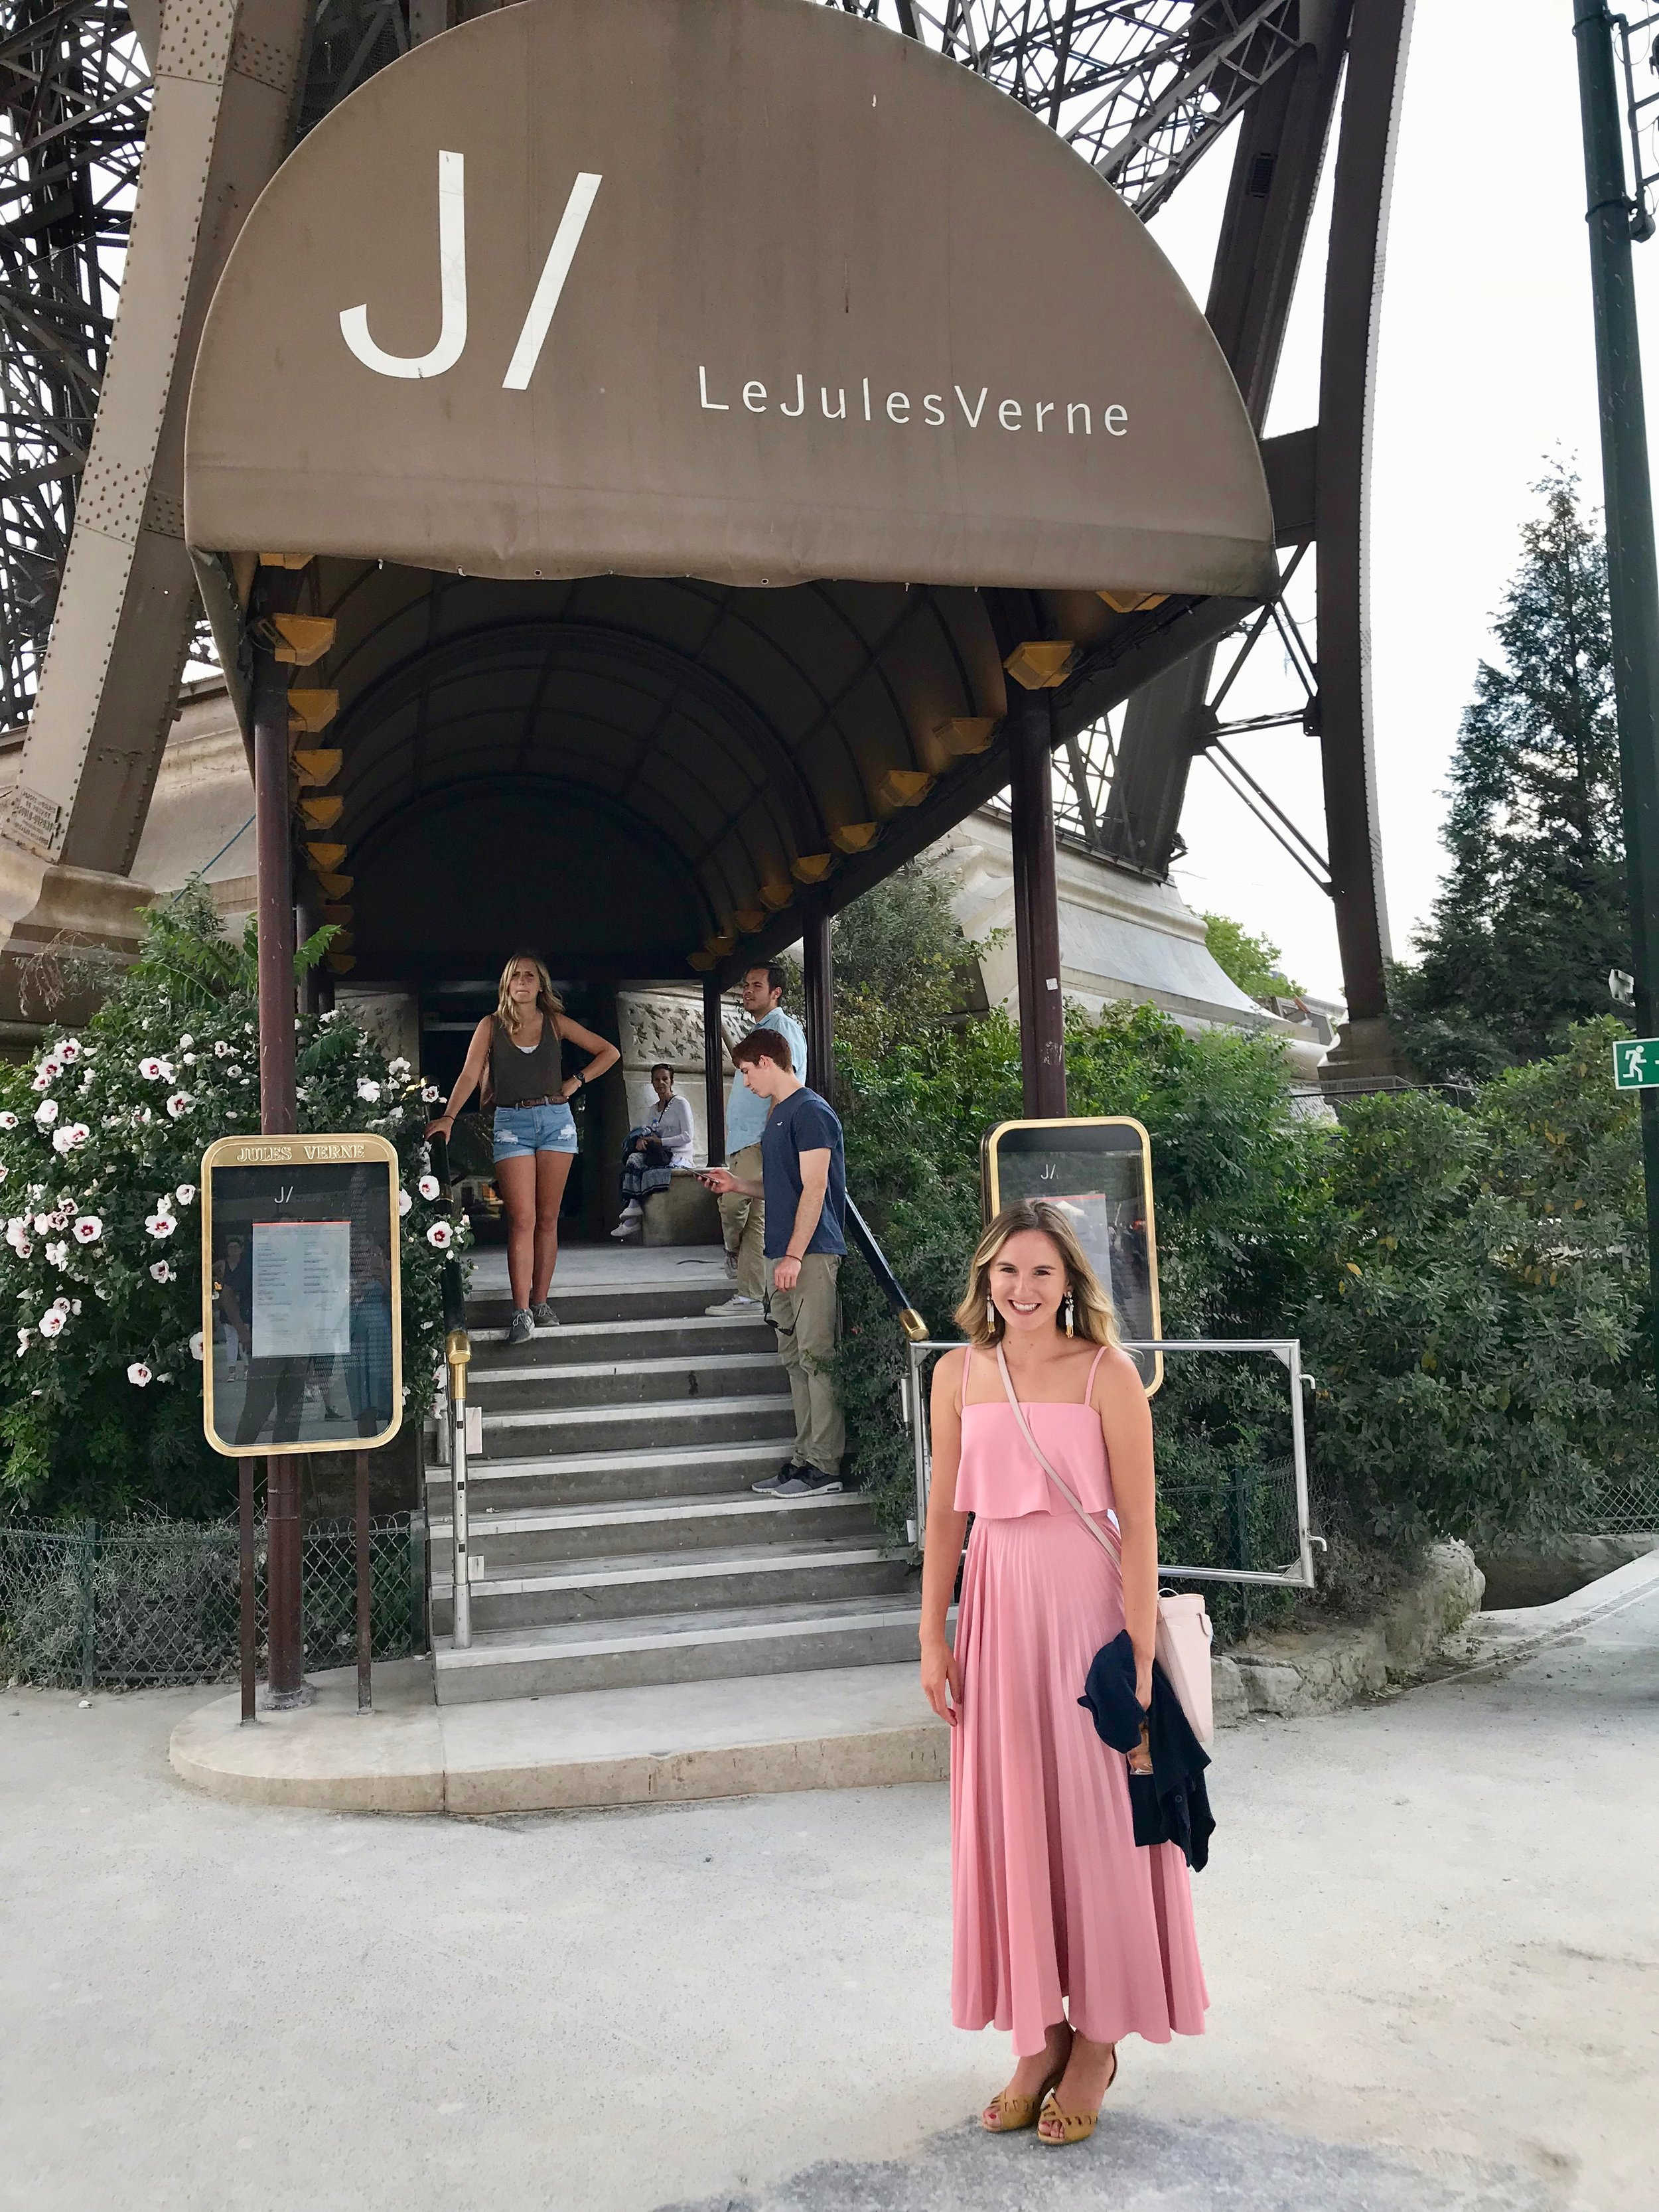 Honeymoon in Paris at Le Jules Verne at the Eiffel Tower